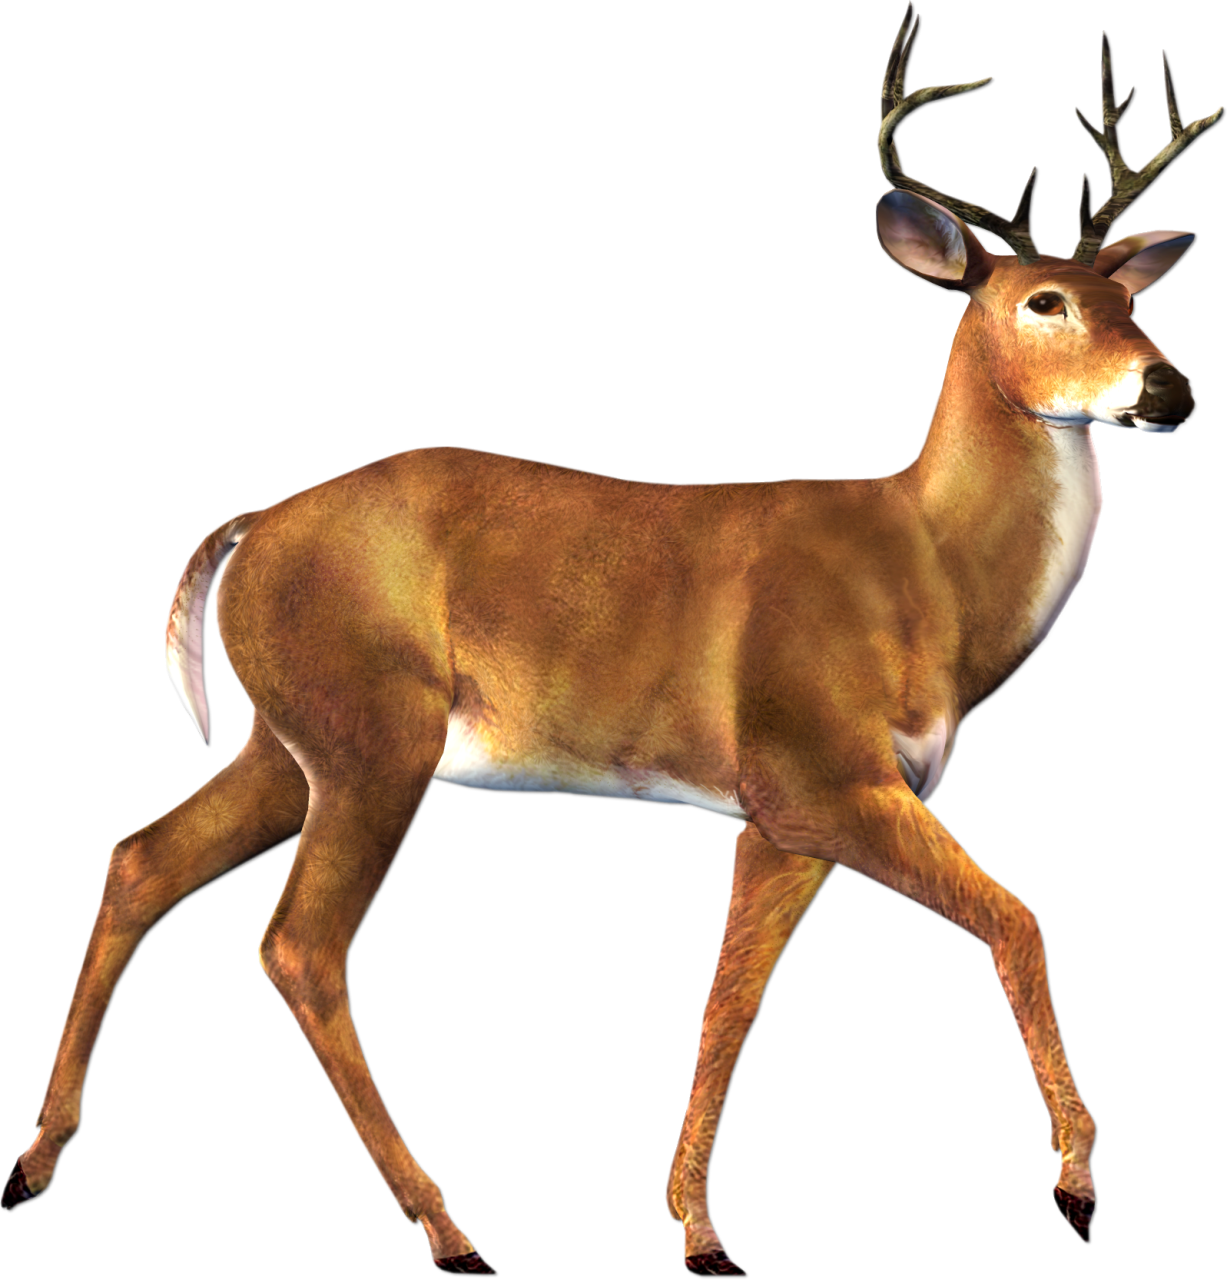 Deer in woods clipart 20 free Cliparts | Download images ...